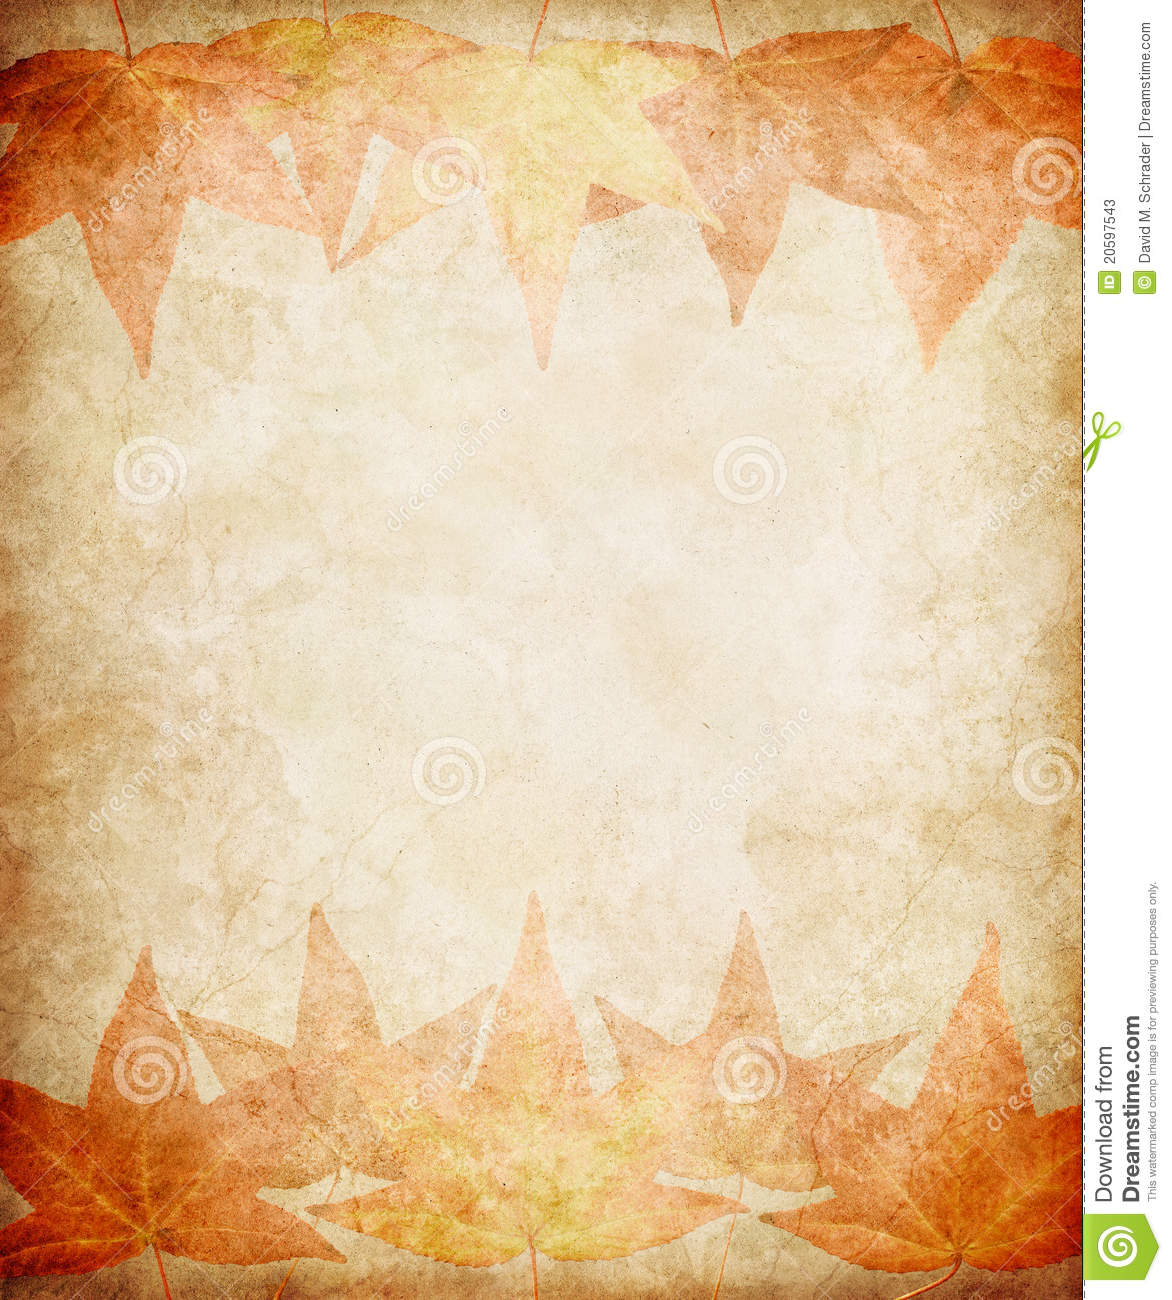 Fall Scarecrow Wallpaper Fall Leaves On Grunge Paper Stock Photos Image 20597543